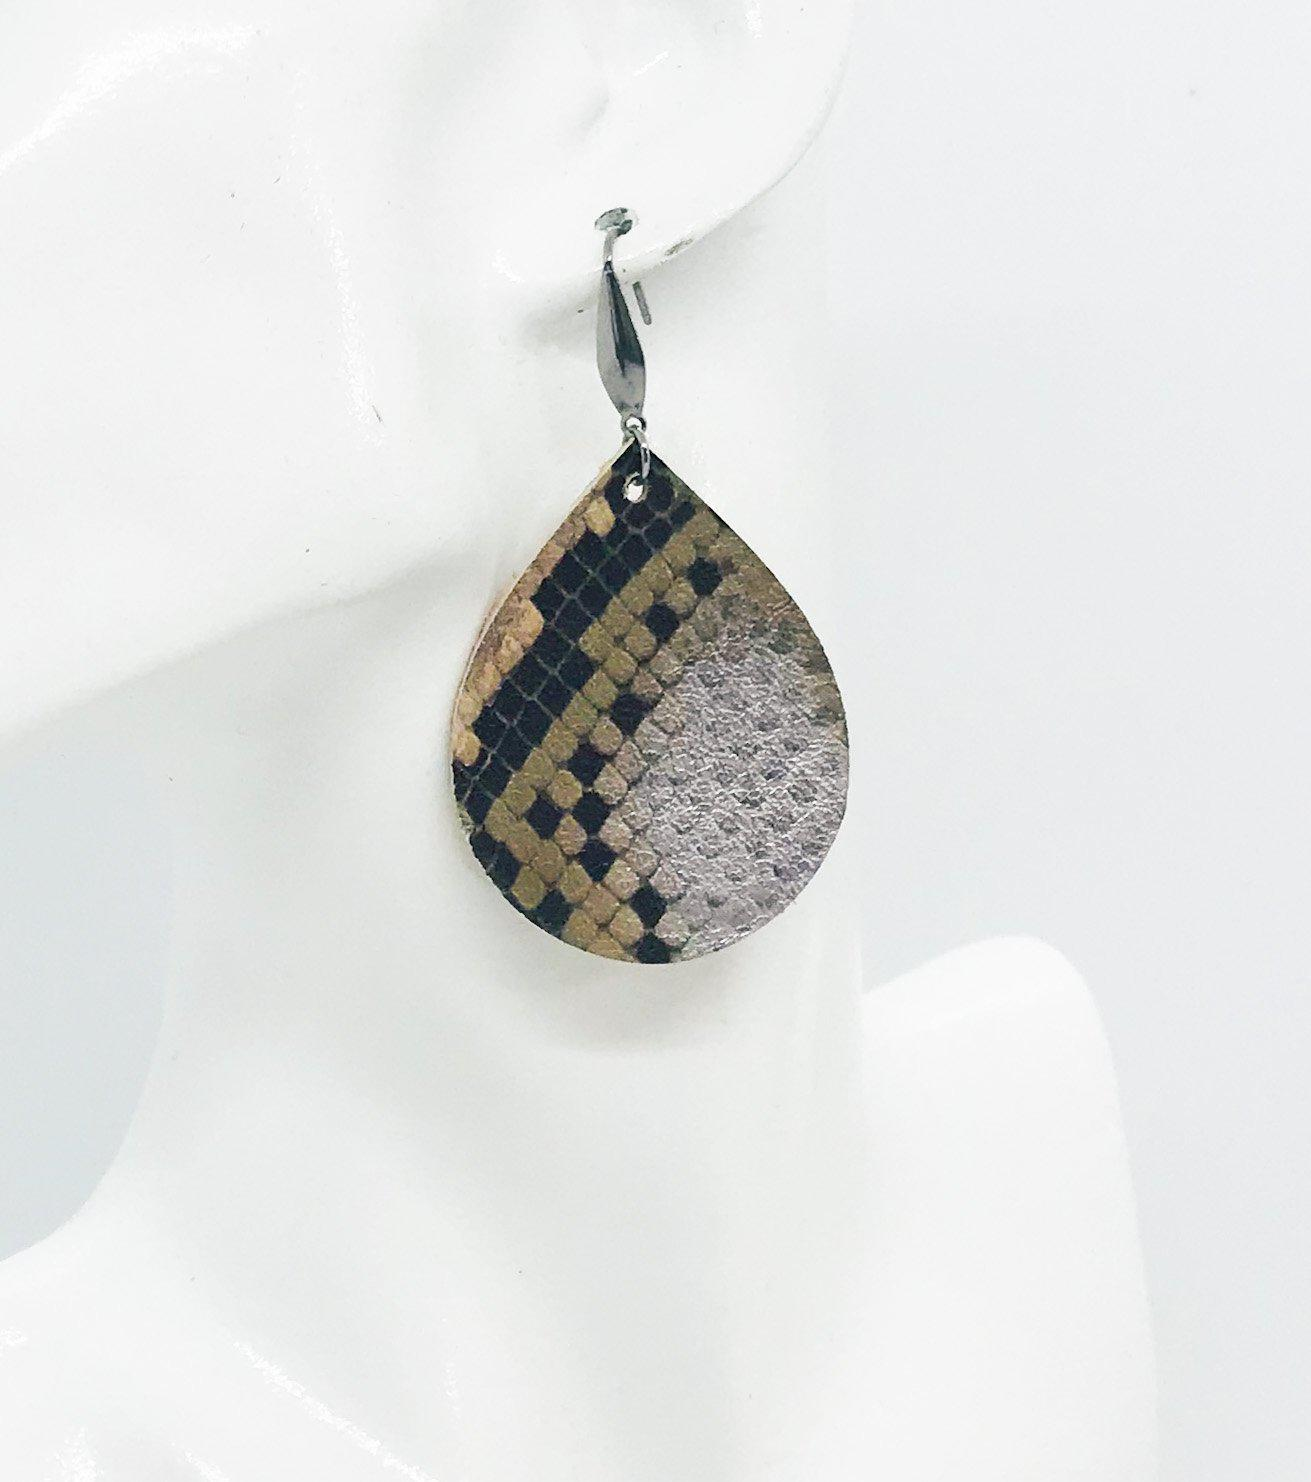 Python Snake Leather Earrings - E19-1159